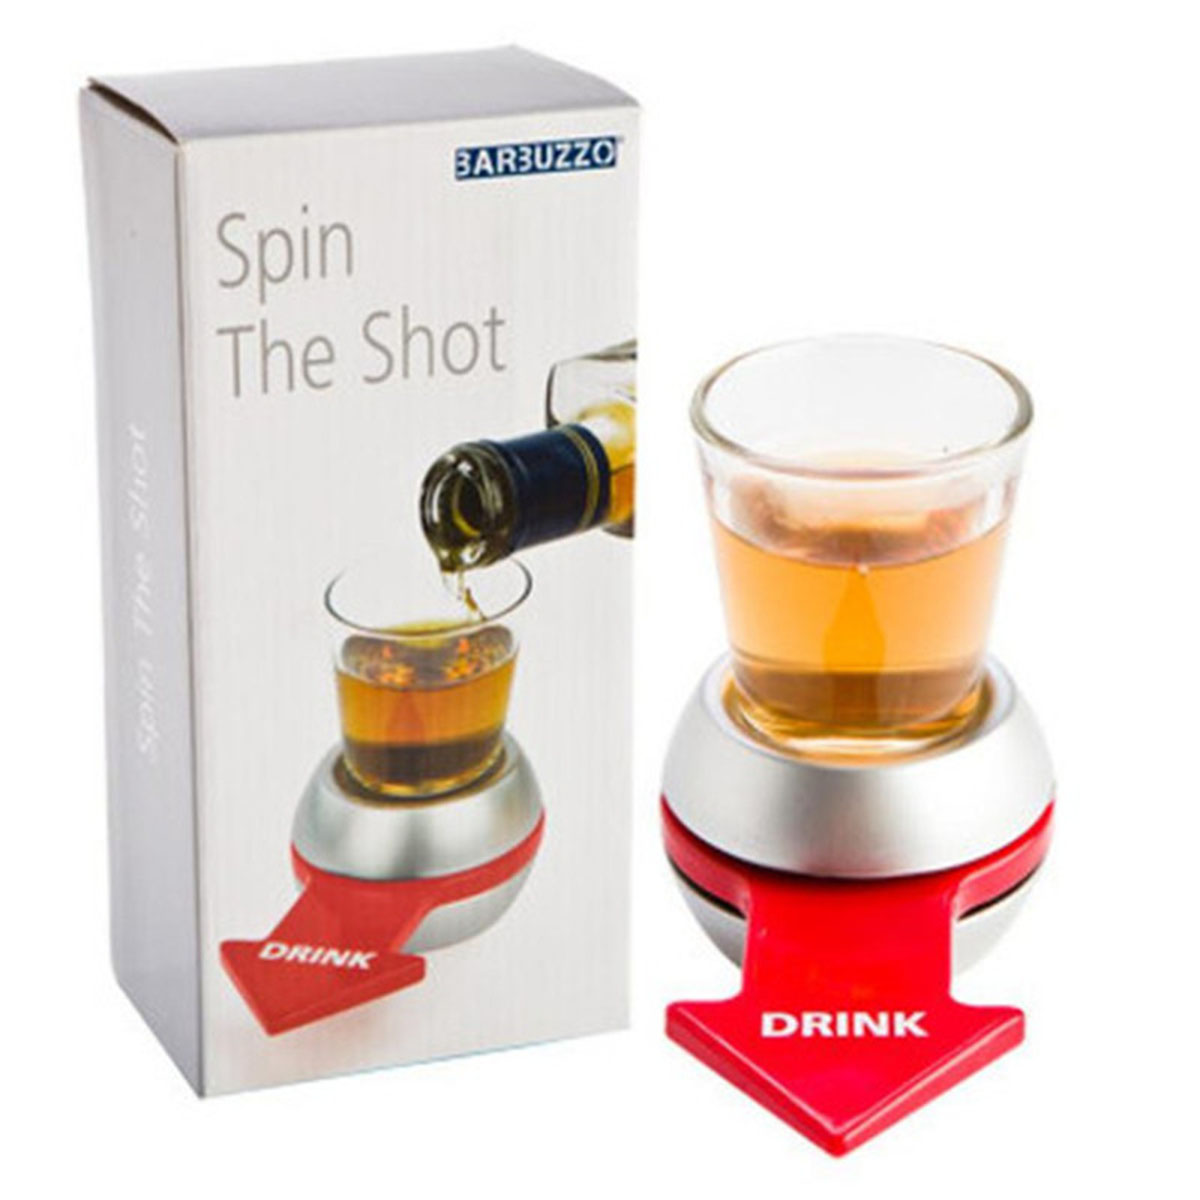 Spin The Shot Beer Glass Golf Turntable Roulette Drinking Games for Adults Arrow Pointer Turntable Wheel Bar Fun Party Joke Toys image